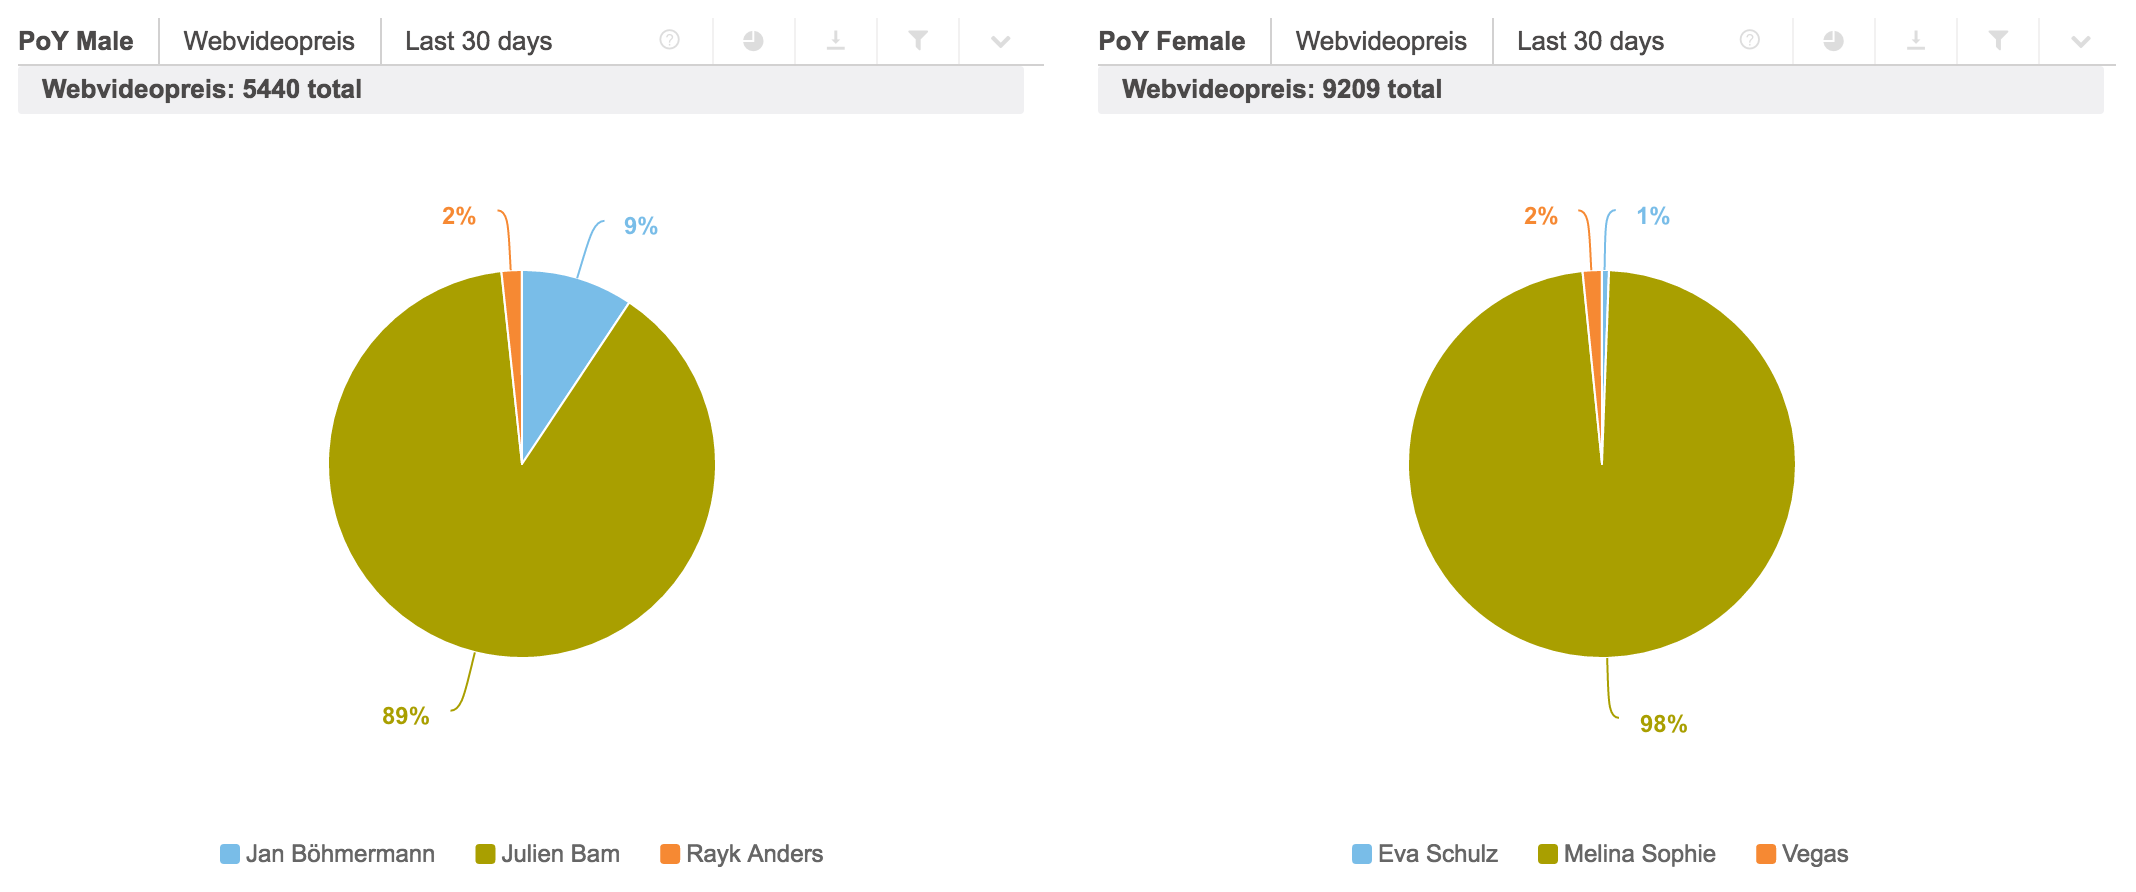 wvp16 Share of Buzz PoY